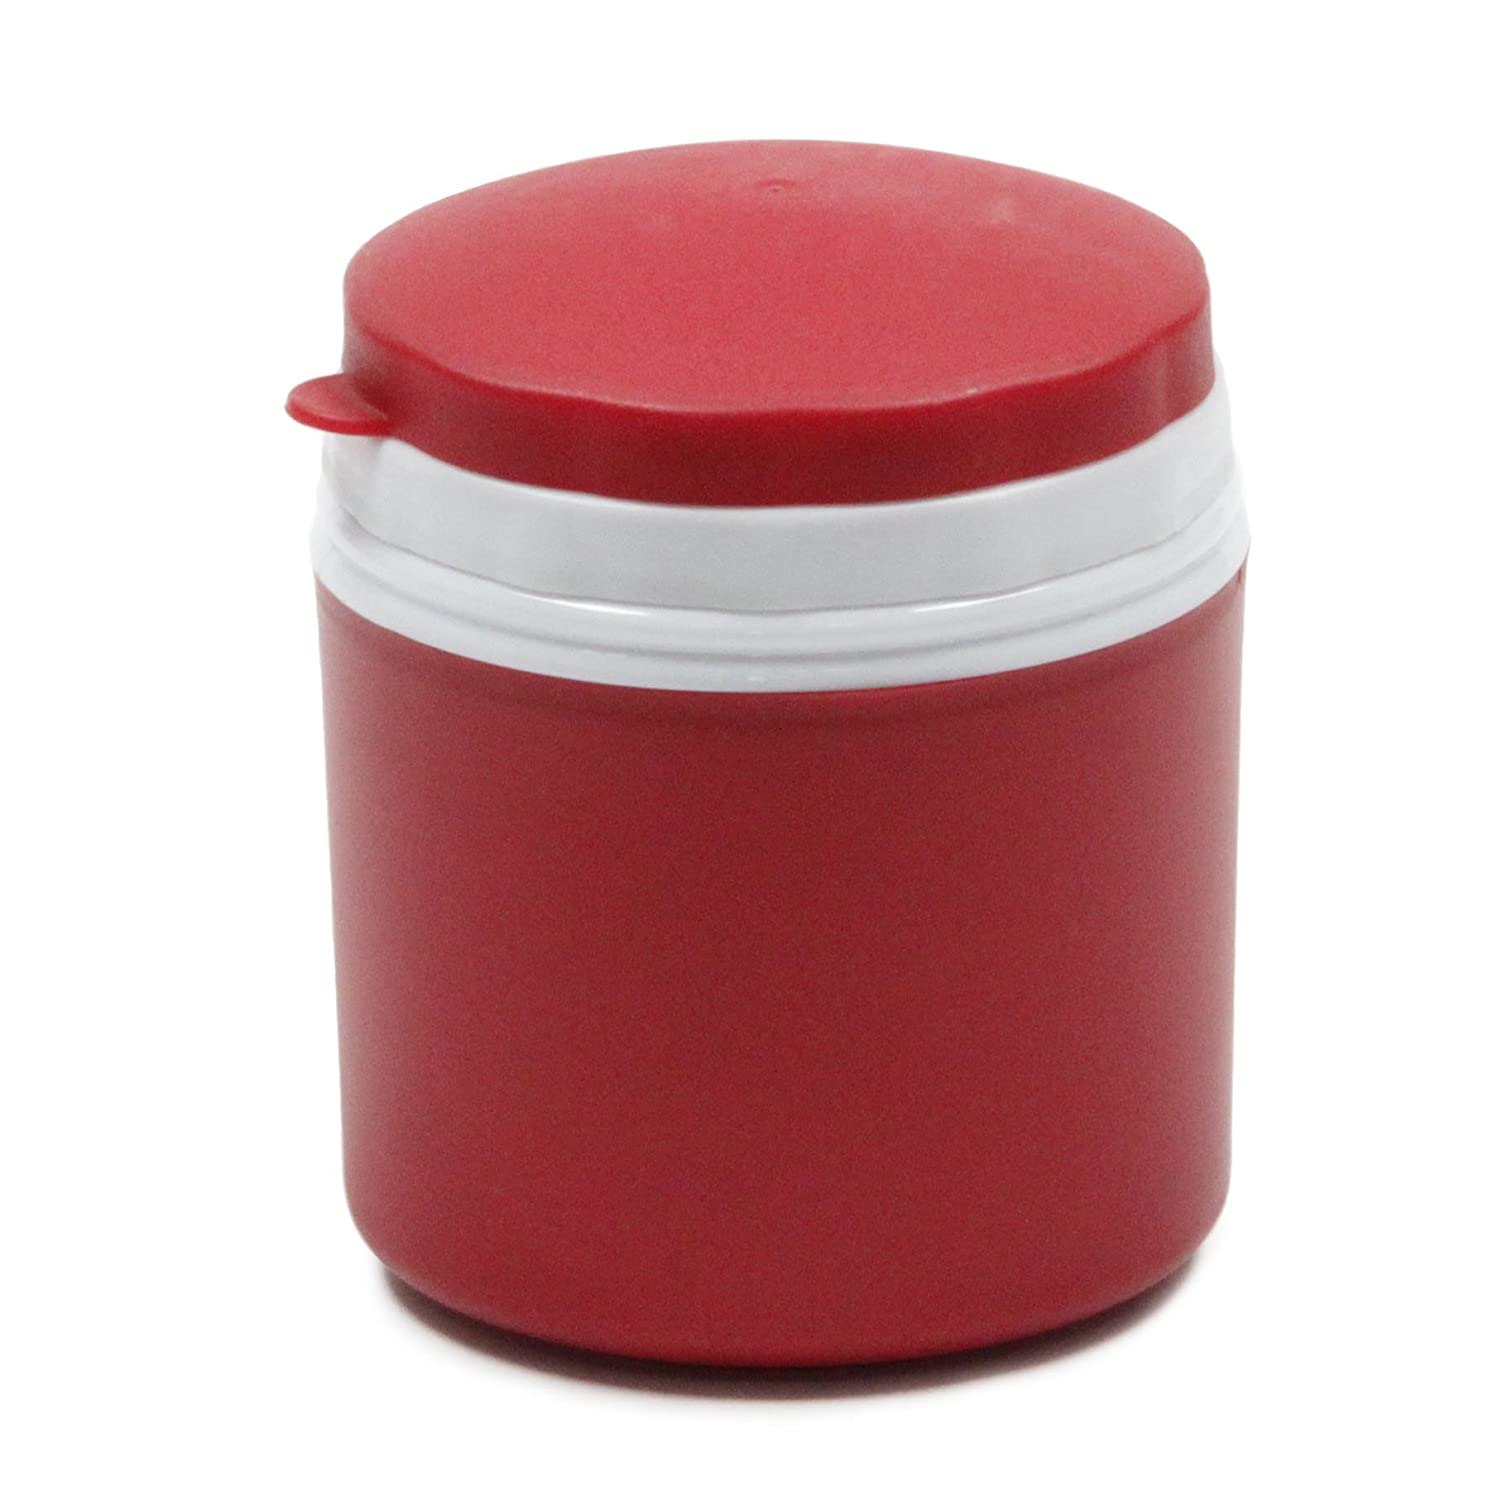 Chef Craft 2-1/2-Cup Insulated Food Jar 21633